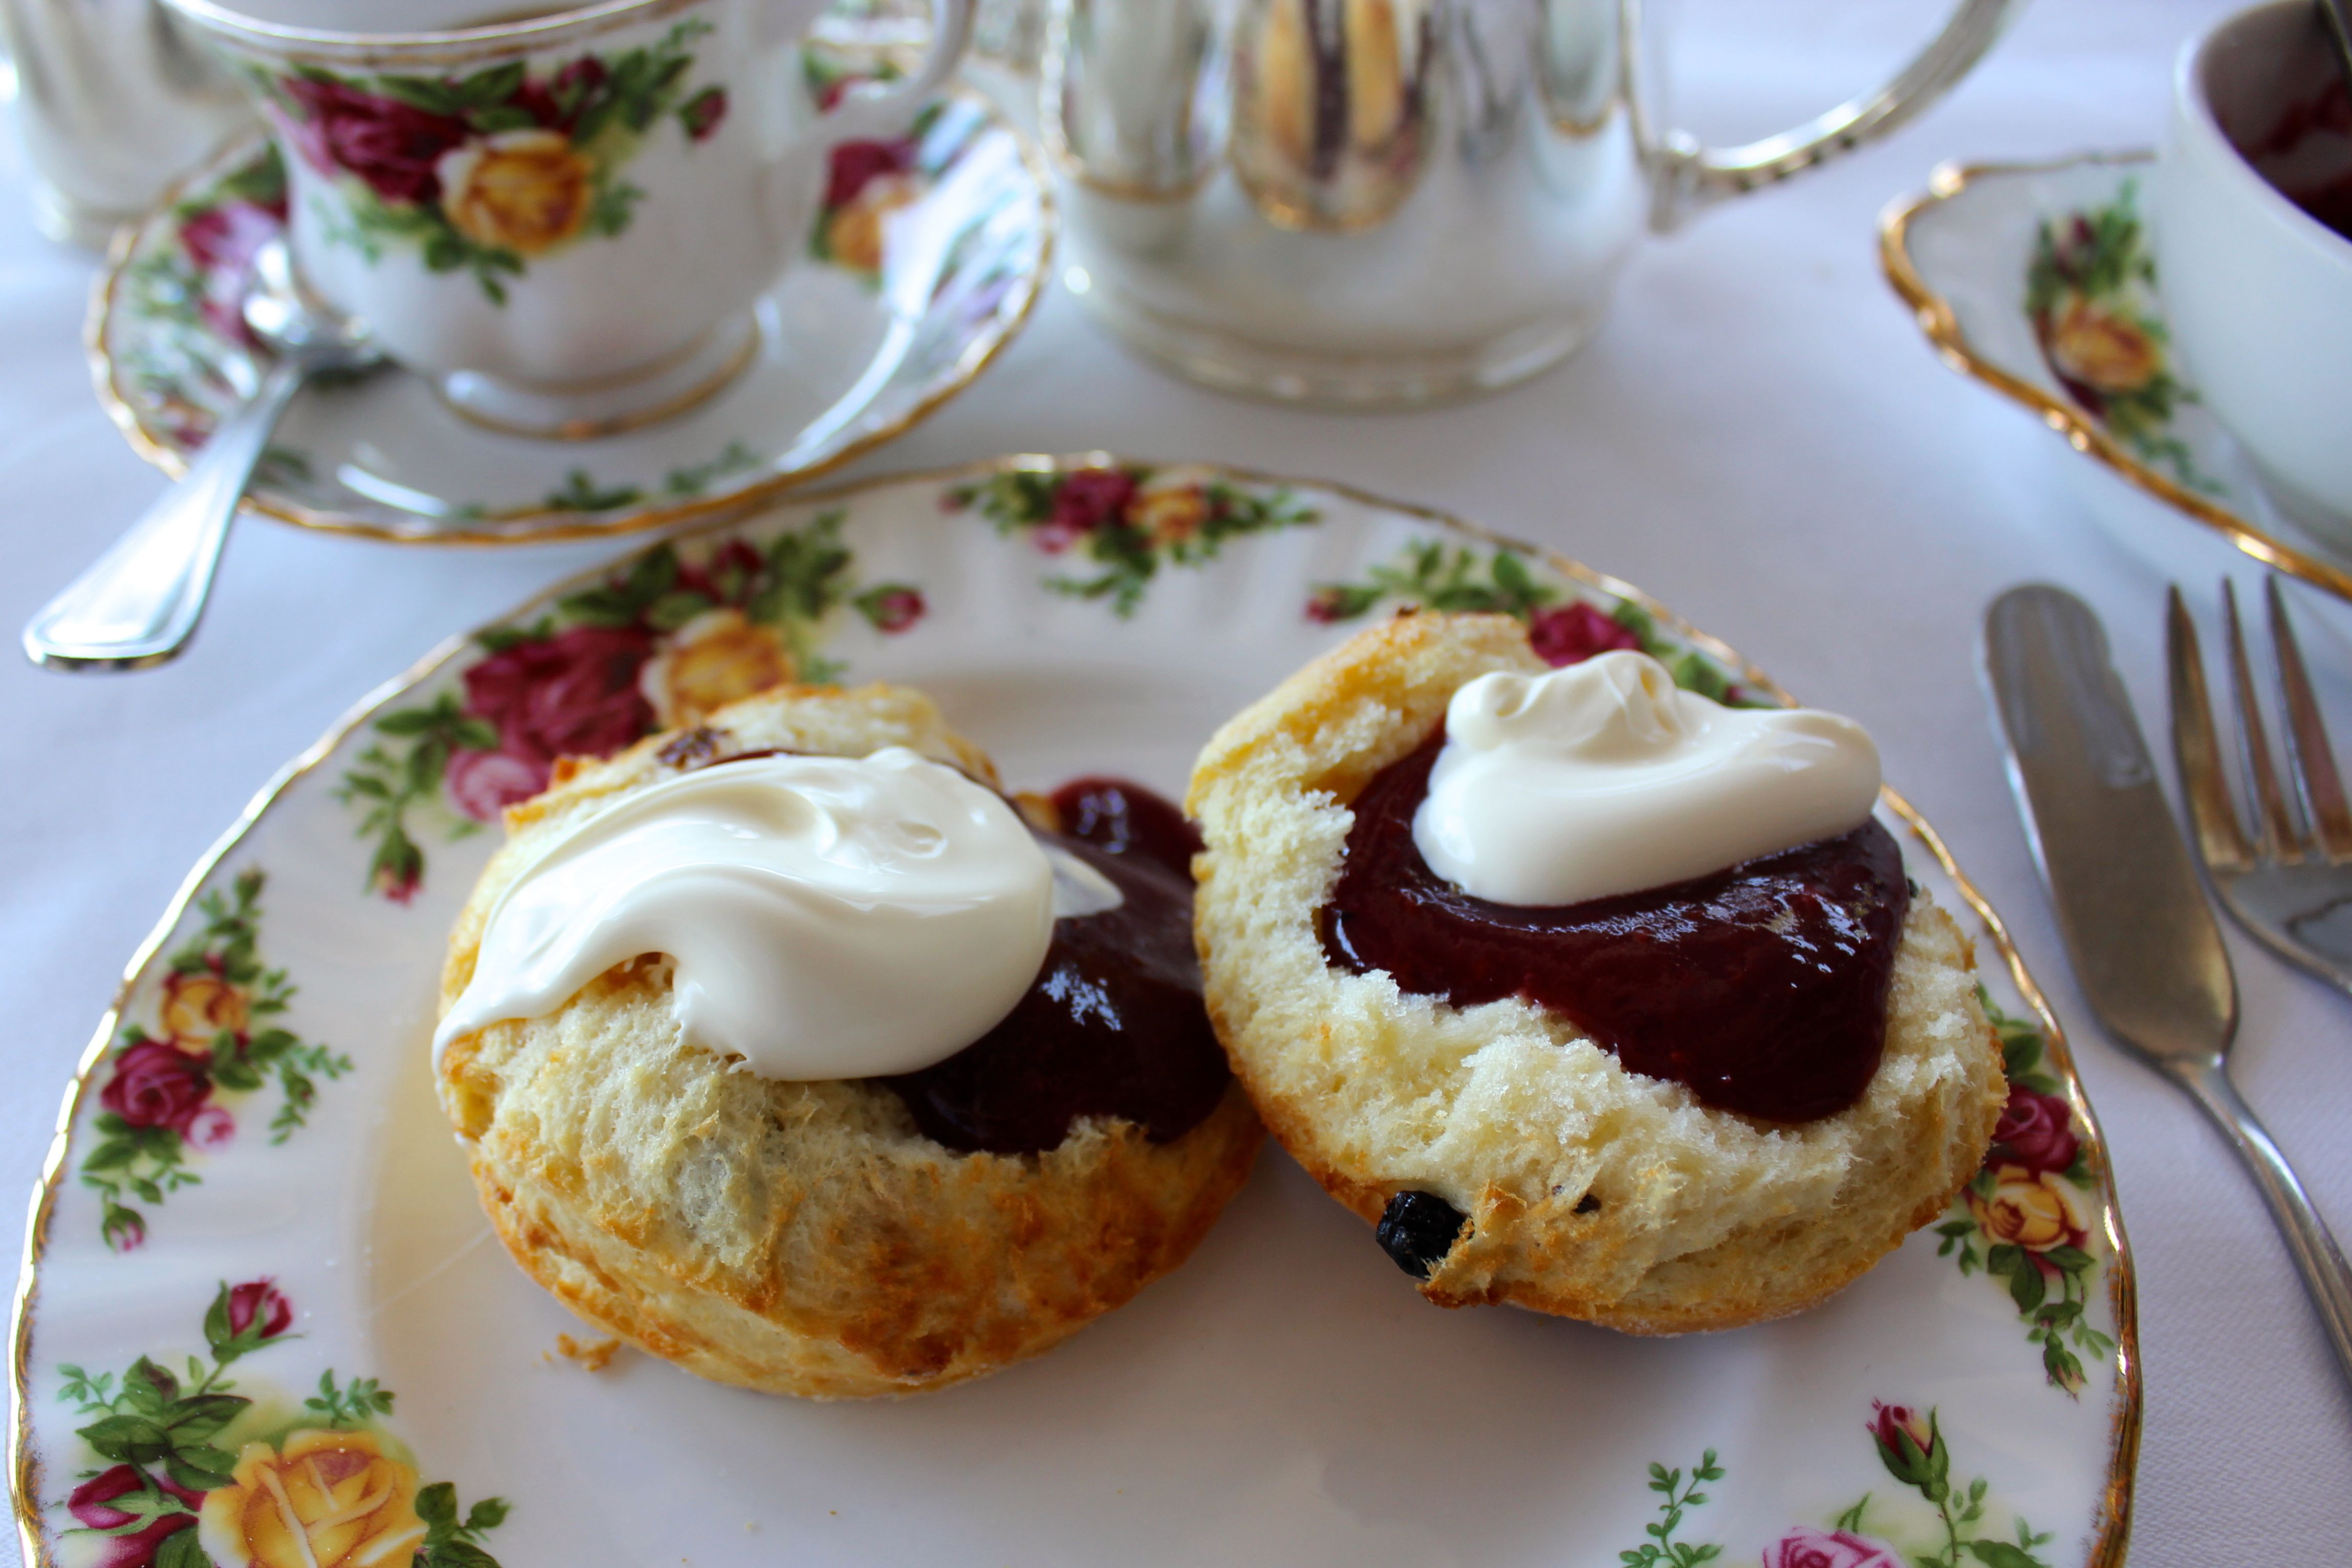 The week on Wallace - High Tea at Gunners Barracks